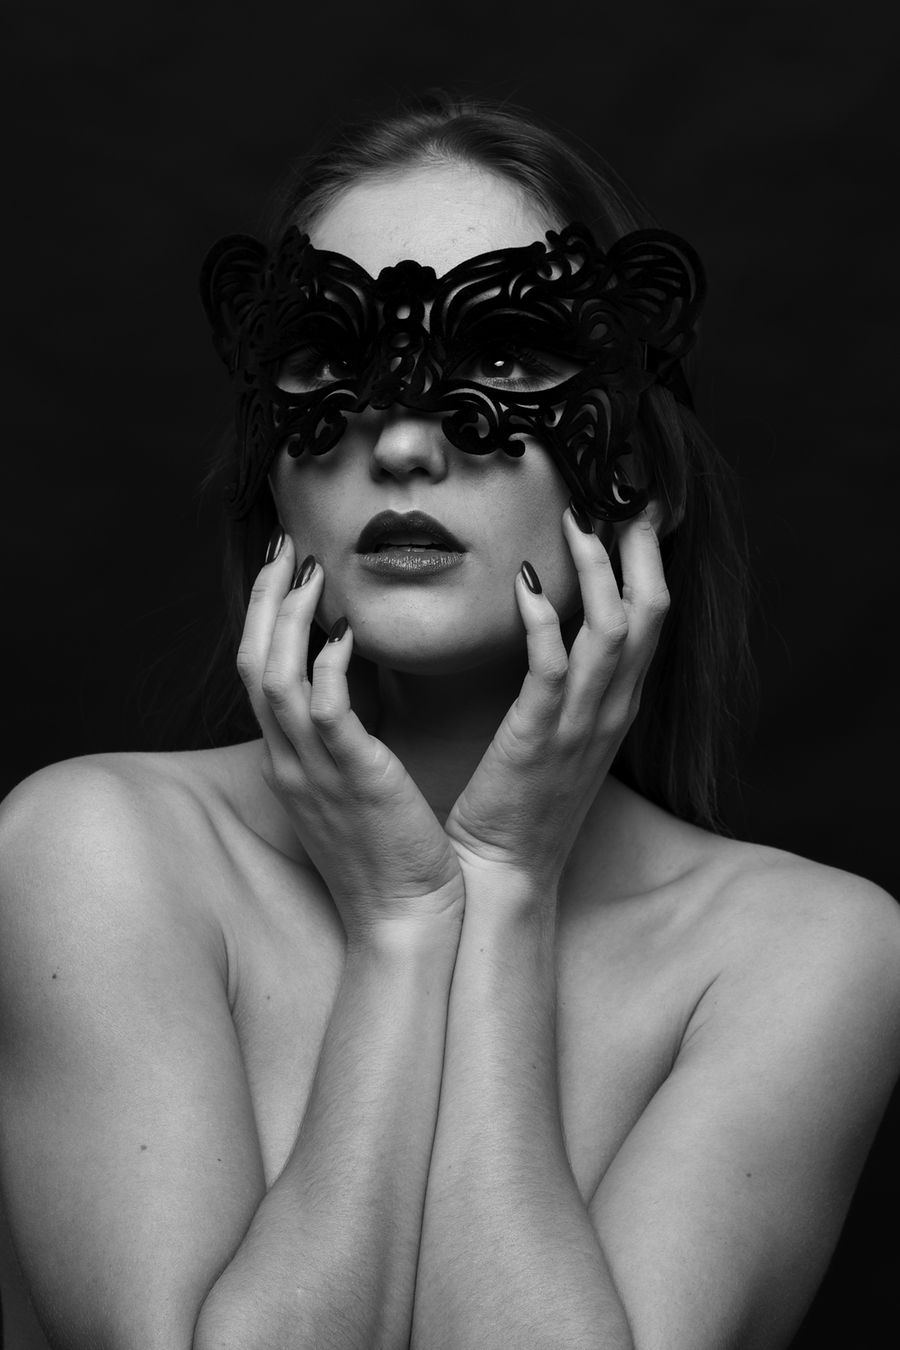 Black & White and Beautiful / Photography by Ian Coyle, Model Rachelle Summers, Taken at Pavilion Photographic Studio / Uploaded 5th November 2015 @ 11:14 PM